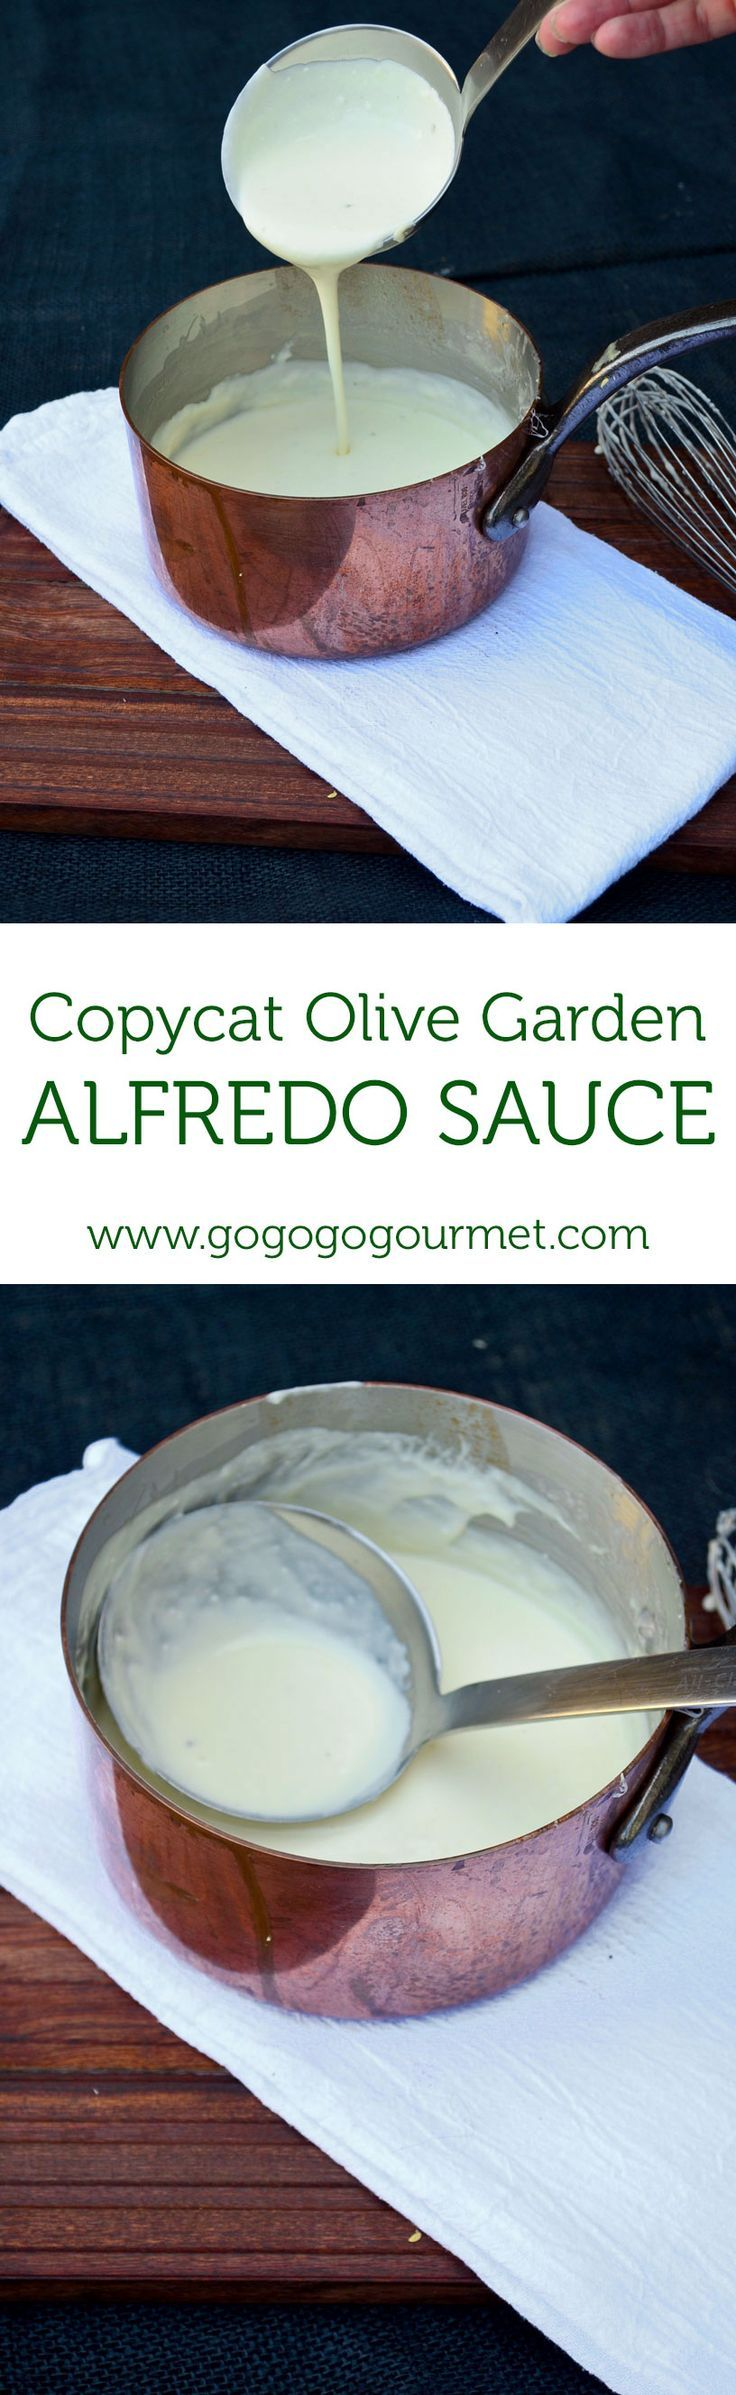 This Copycat Olive Garden Alfredo Sauce is out of this wold good!   Go Go Go Gourmet /gogogogourmet/